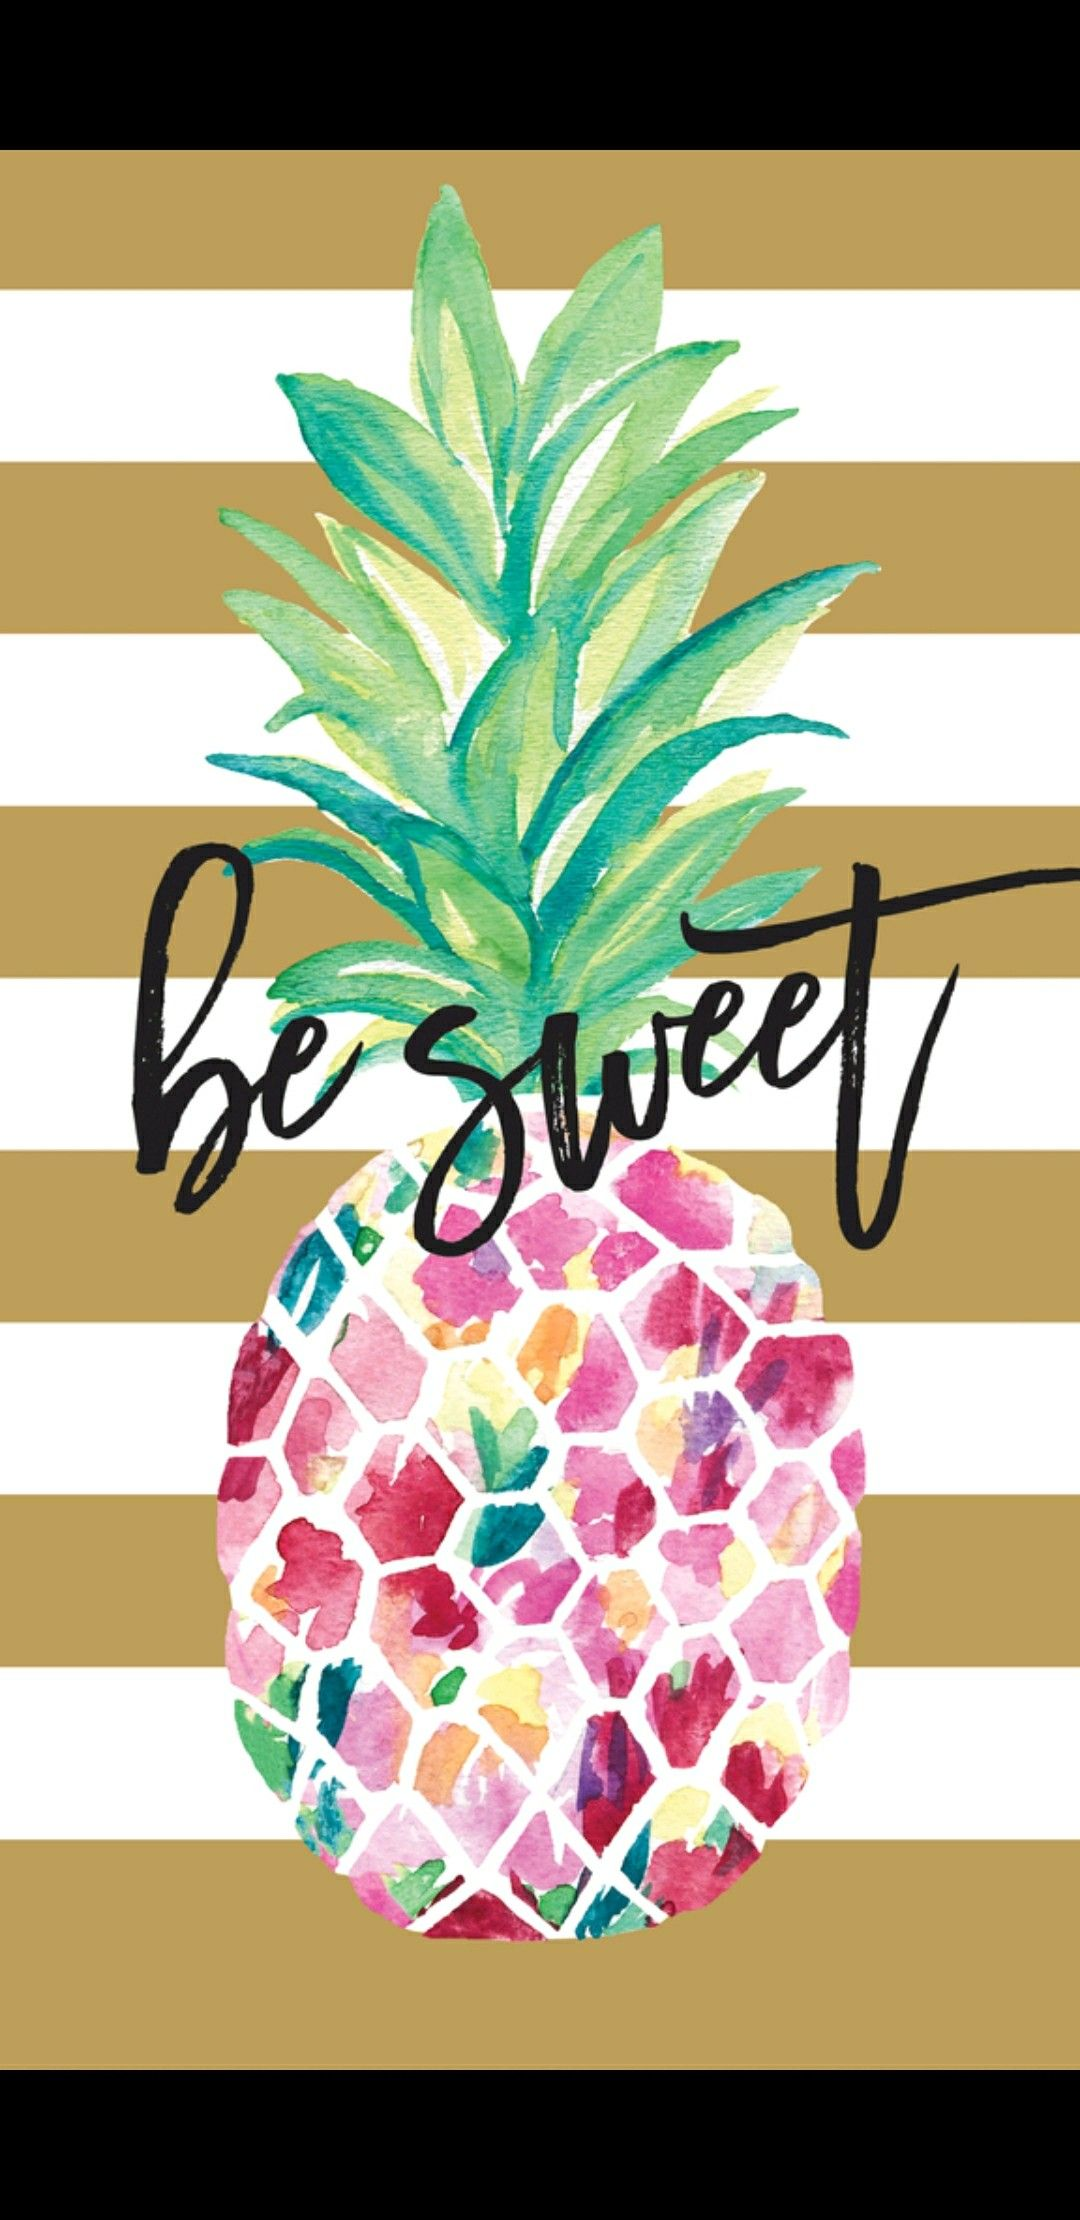 Pin By Babe On Yummy Wallpapers Pineapple Wallpaper Wallpaper Iphone Summer Iphone Wallpaper